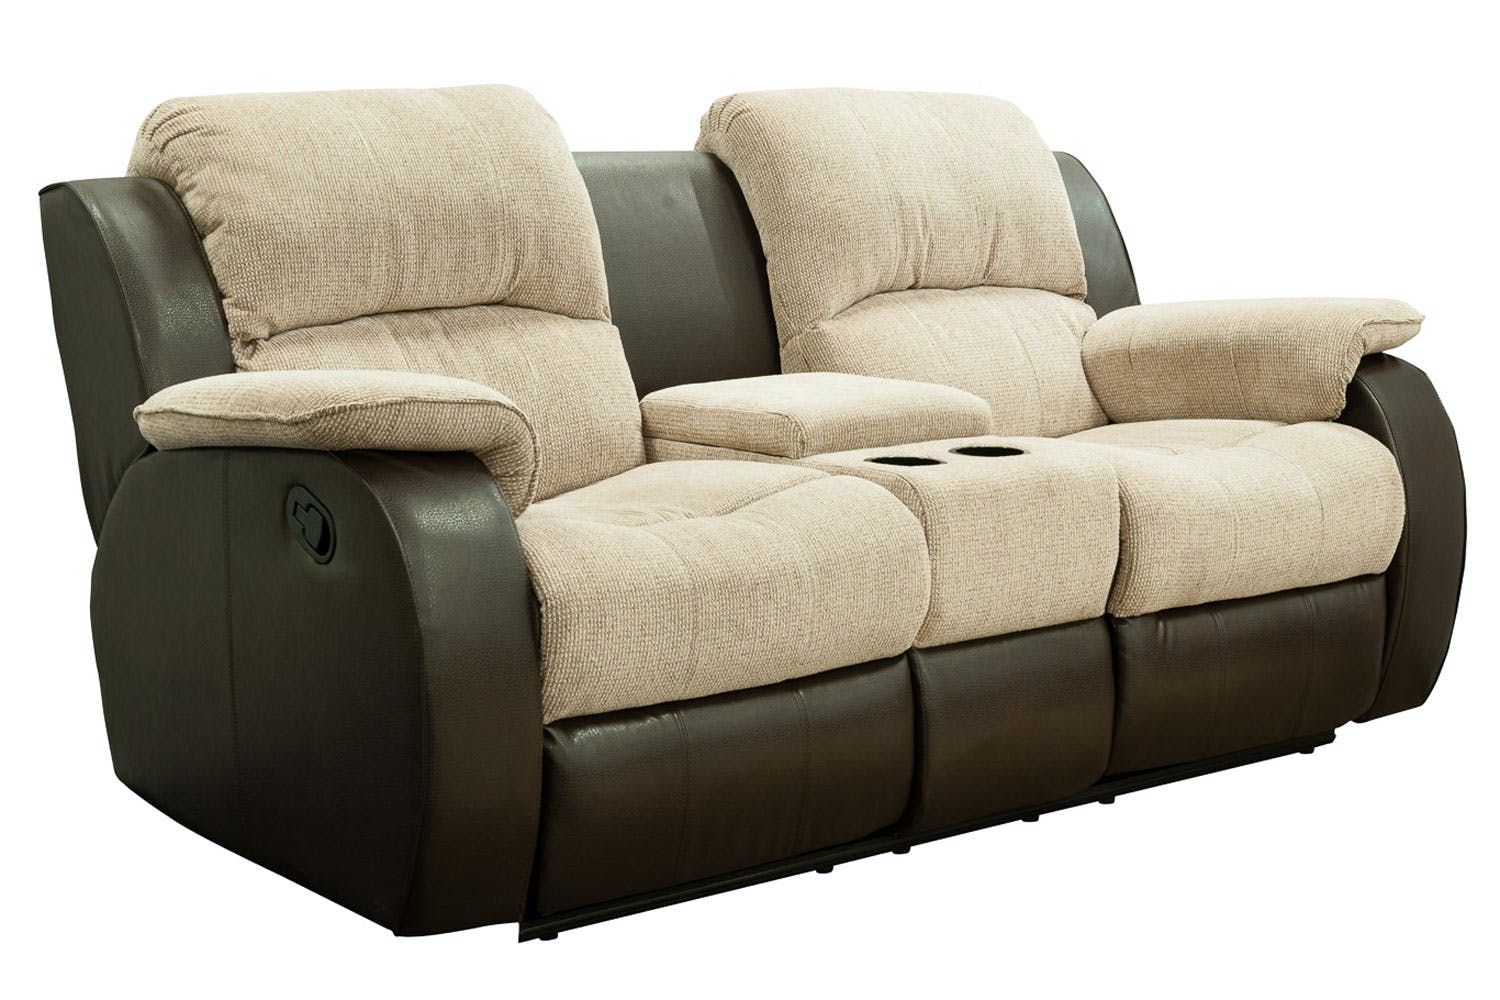 Recliner sofa with console burgundy leather reclining sofa with console and nailhead trim thesofa Loveseats that recline